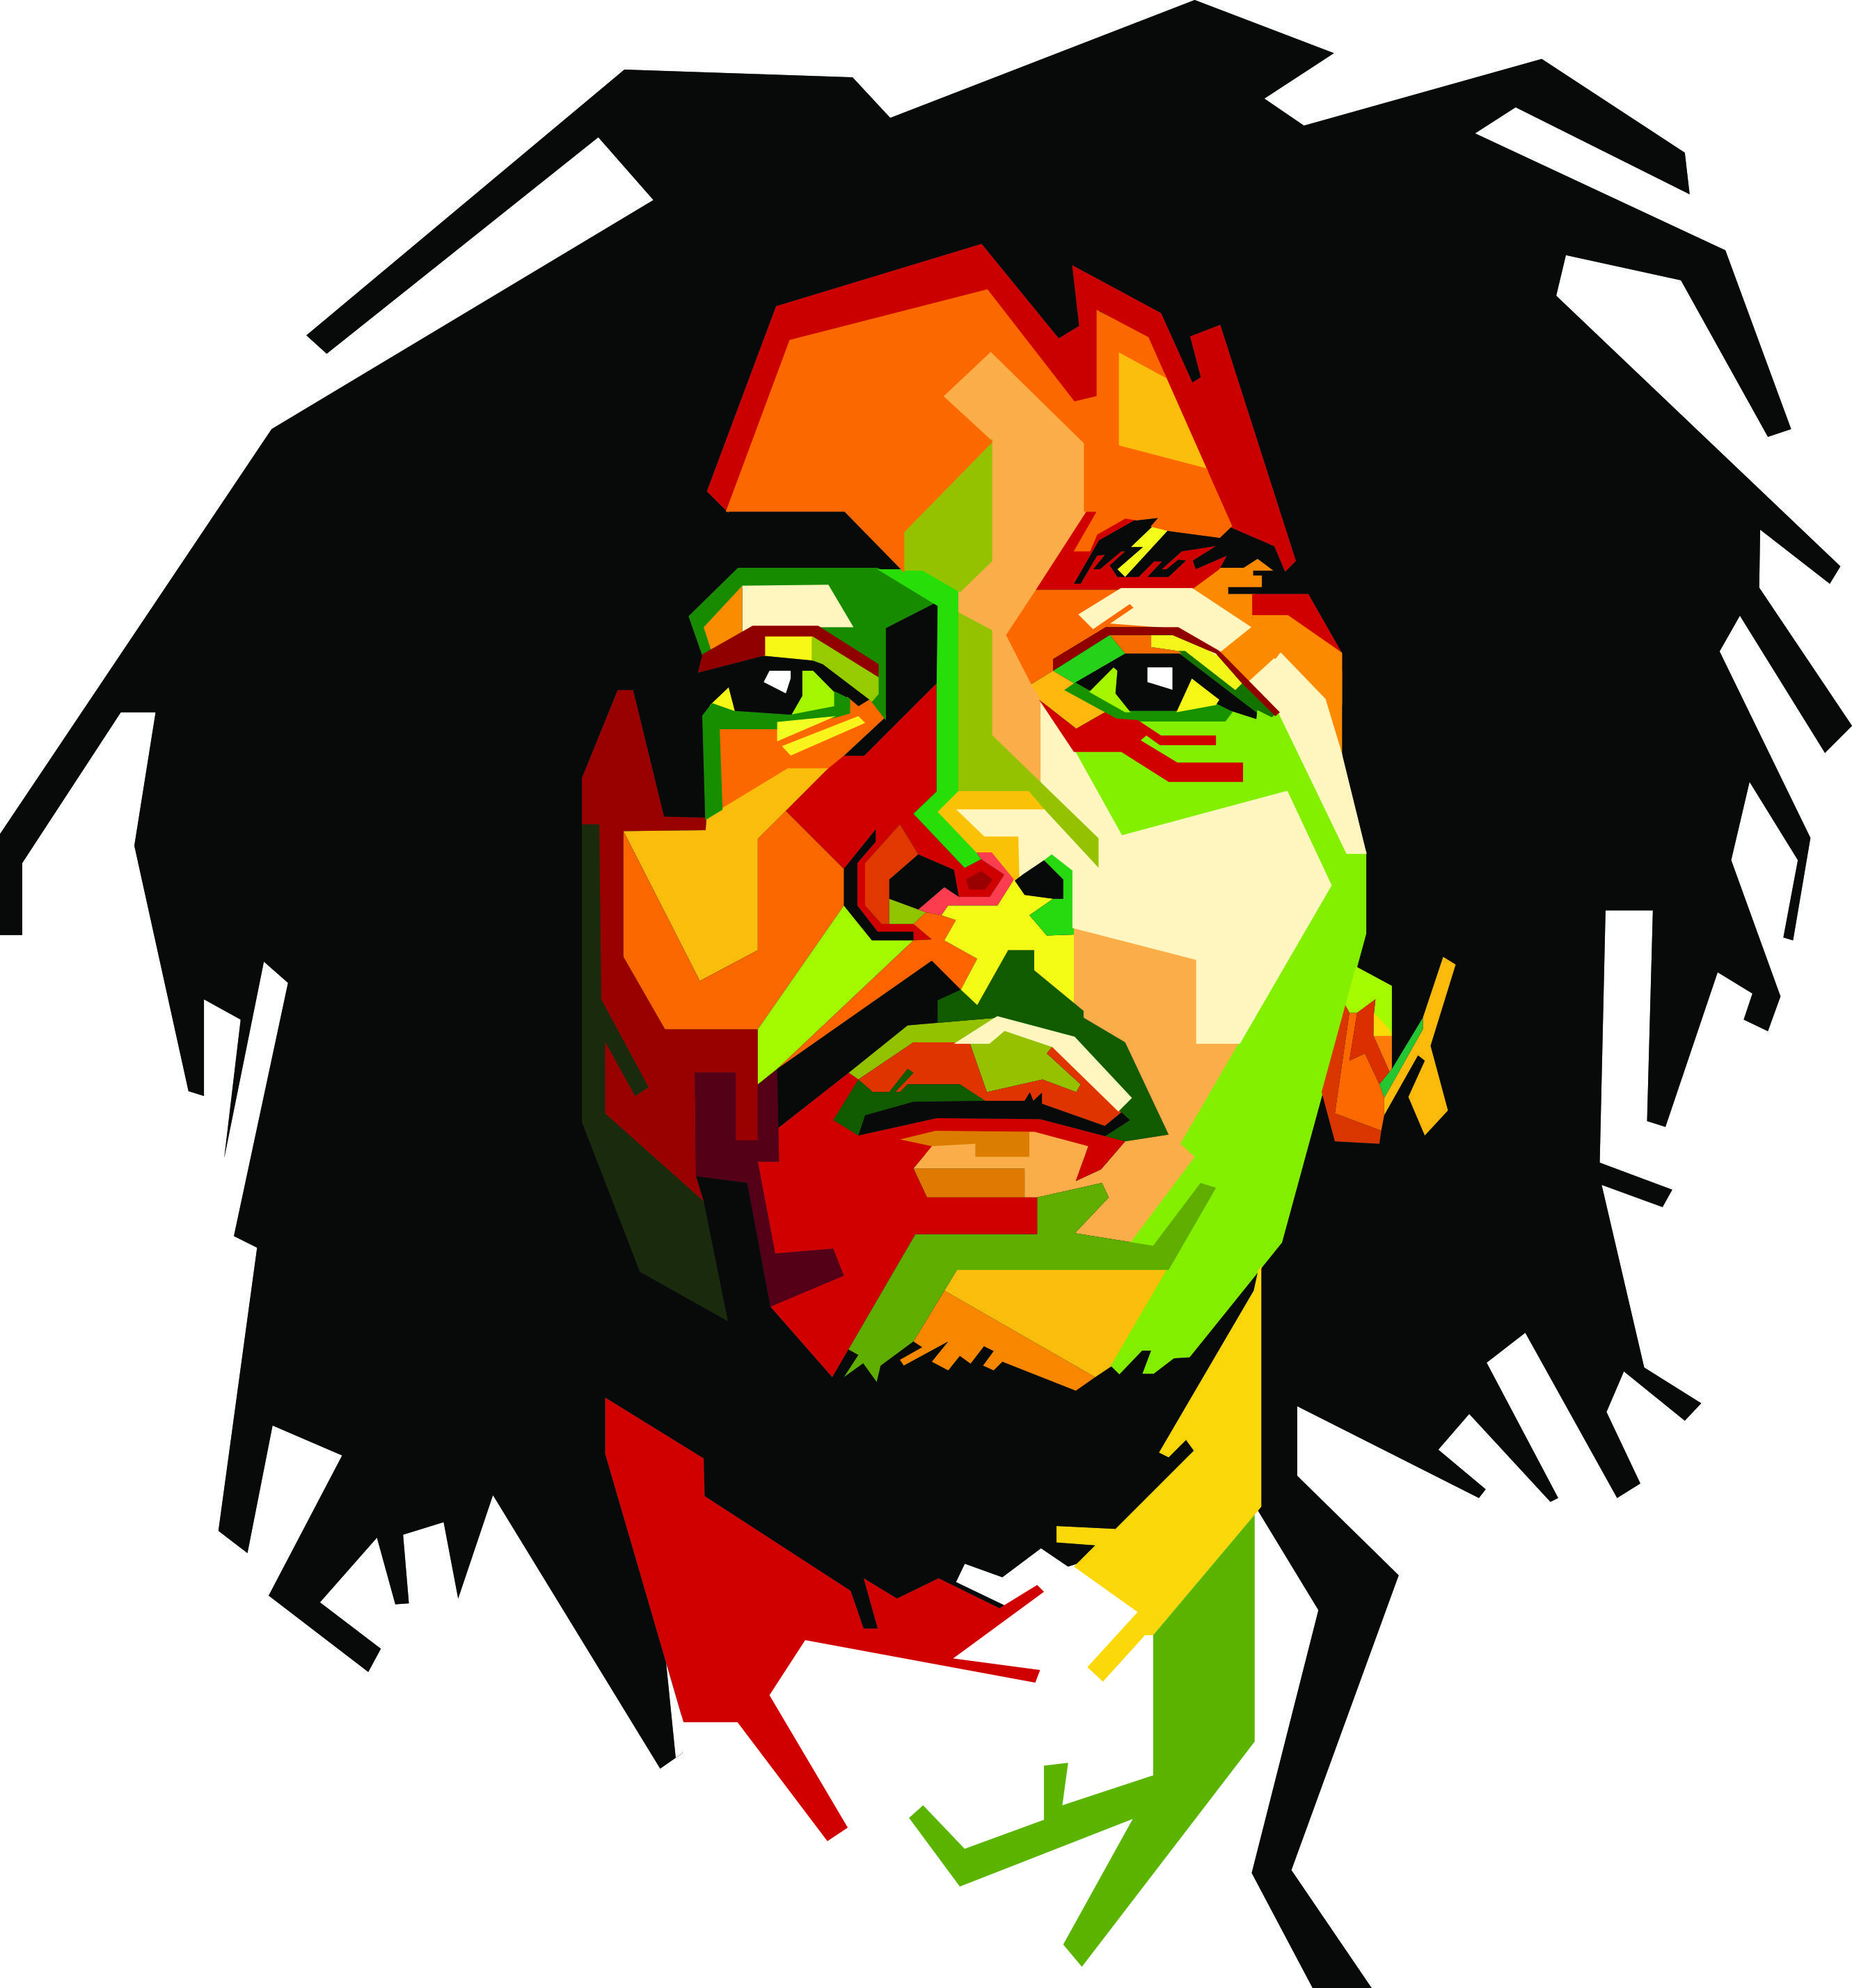 bob marley clip art real clipart and vector graphics u2022 rh candelalive co uk